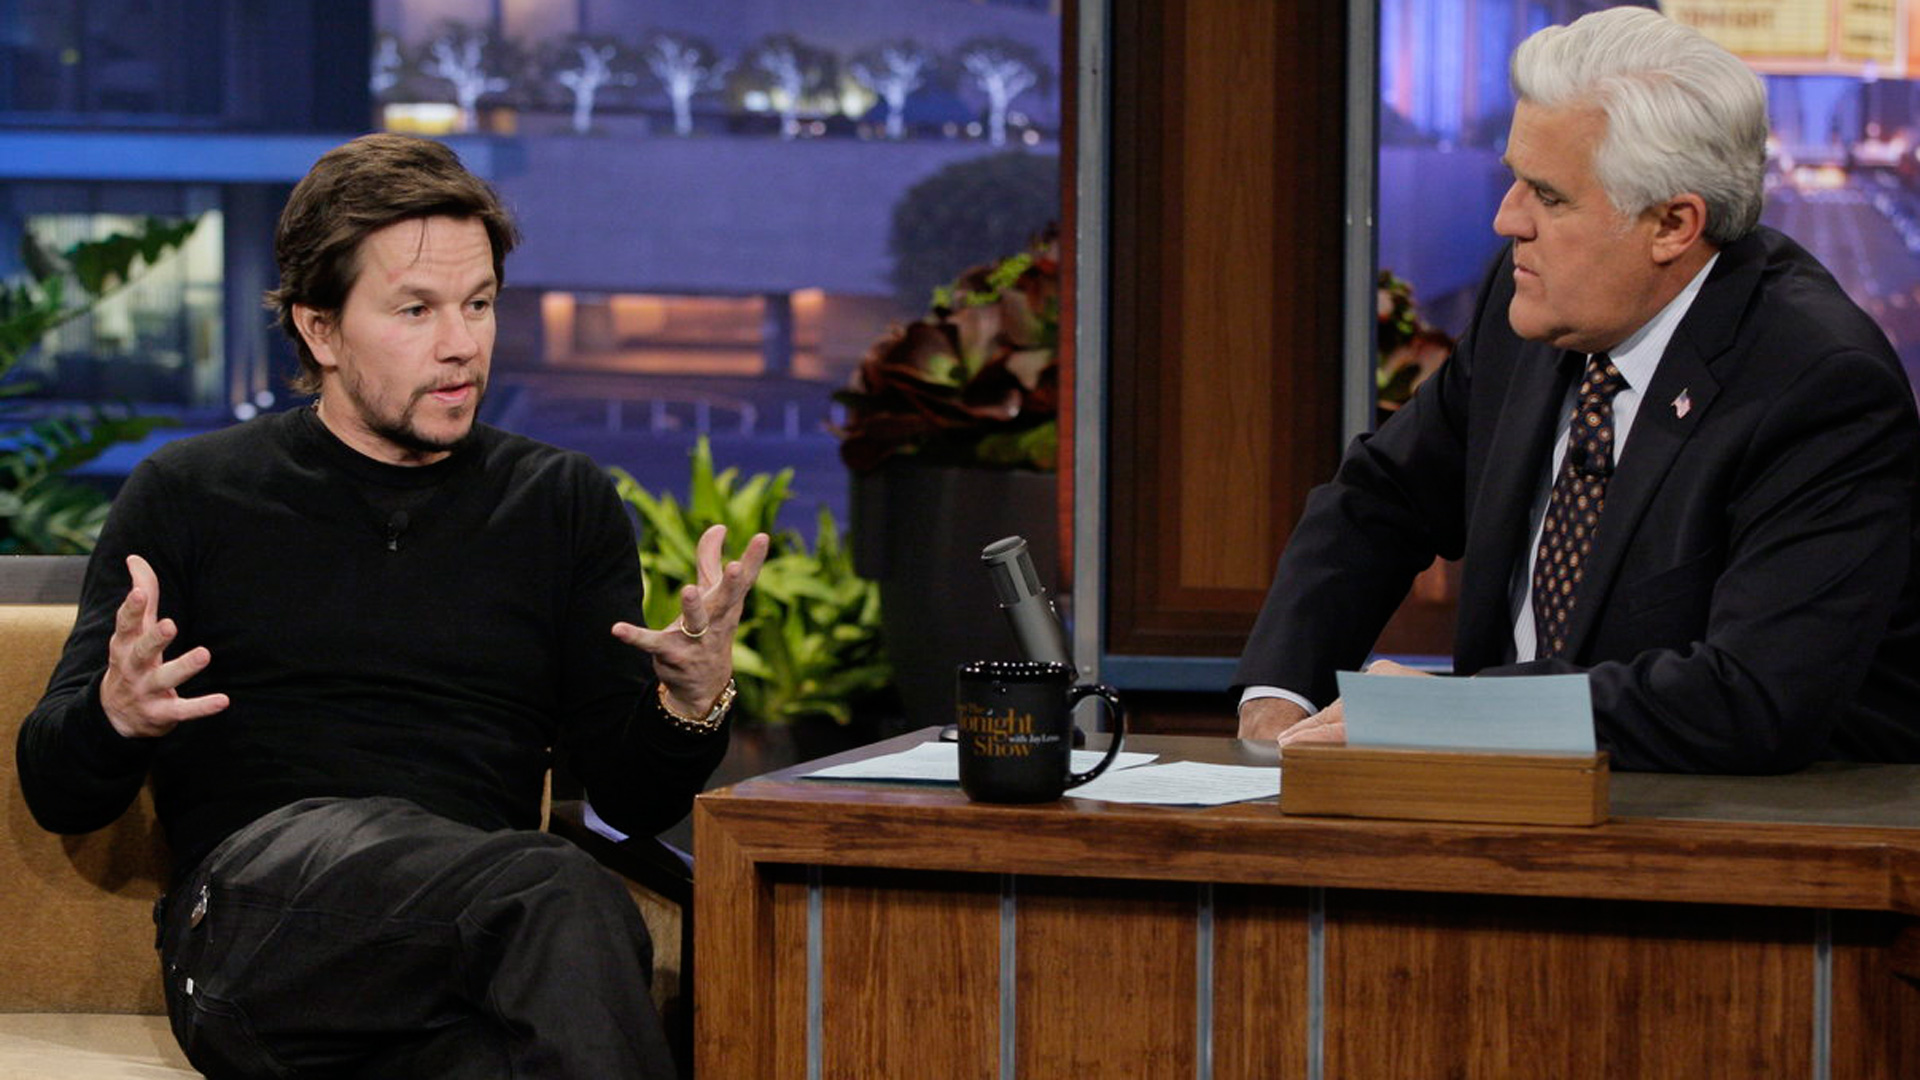 Mark Wahlberg, Kathryn Hahn, with musical guest Salaam Remi featuring Akon